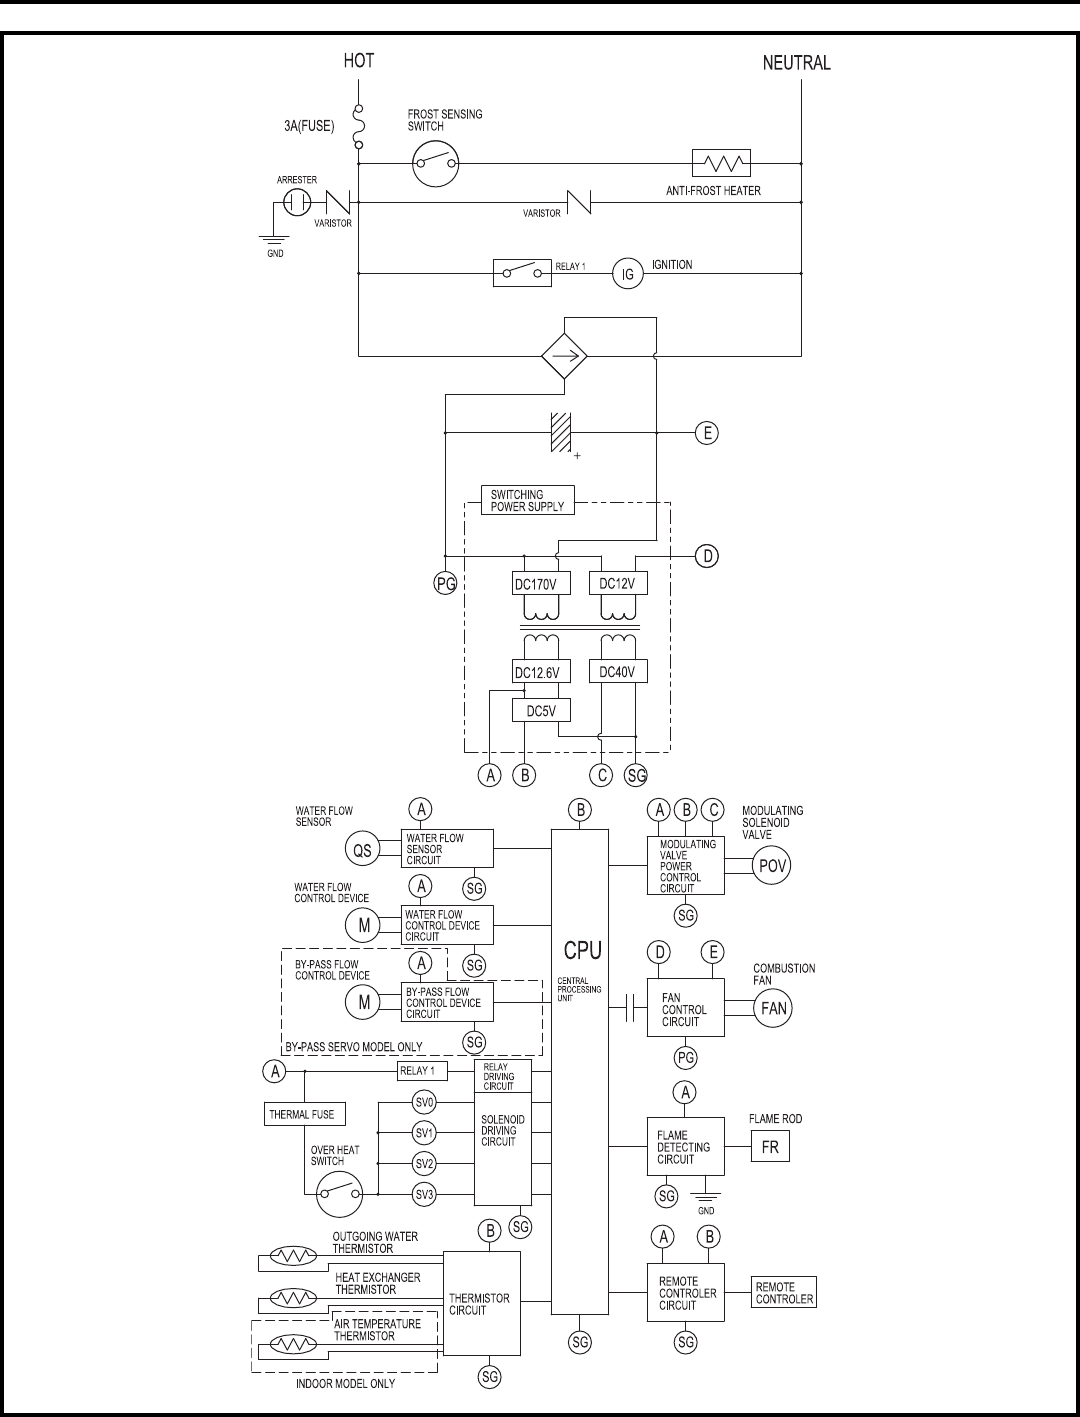 ladder wiring diagram fan light switch how to wire multiple switches agnitum water heater 27 images